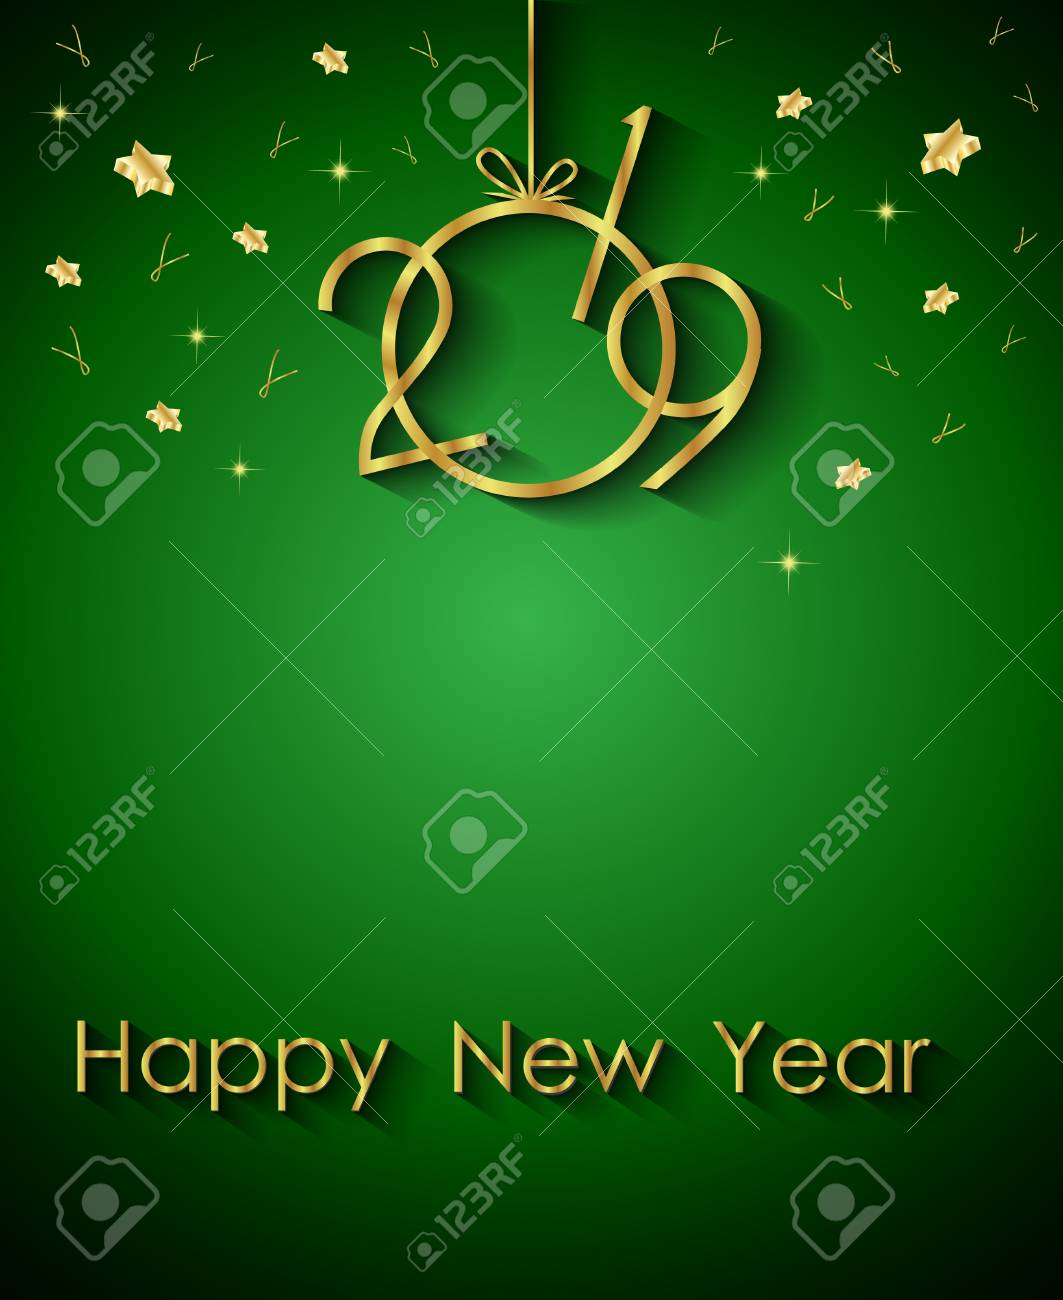 2019 happy new year background for your invitations festive posters greetings cards stock